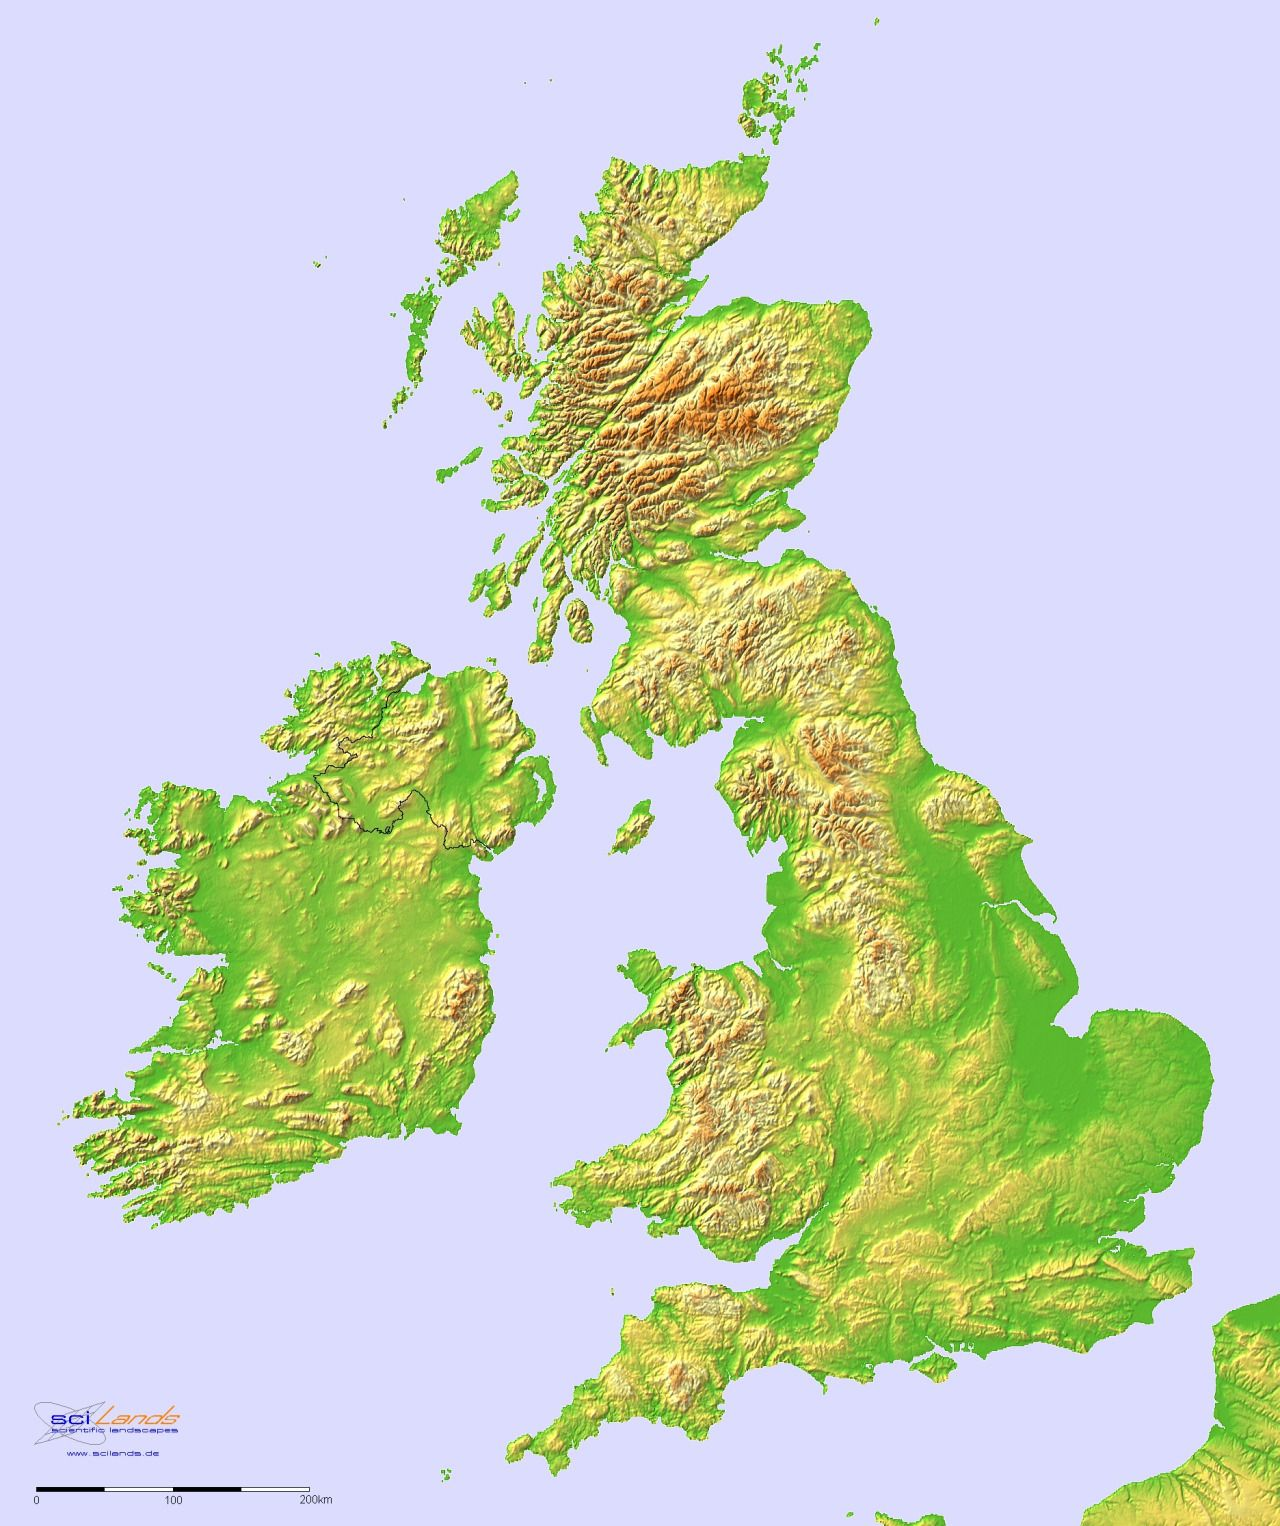 Topographic Hillshade Map Of Great Britain And Ireland More Relief